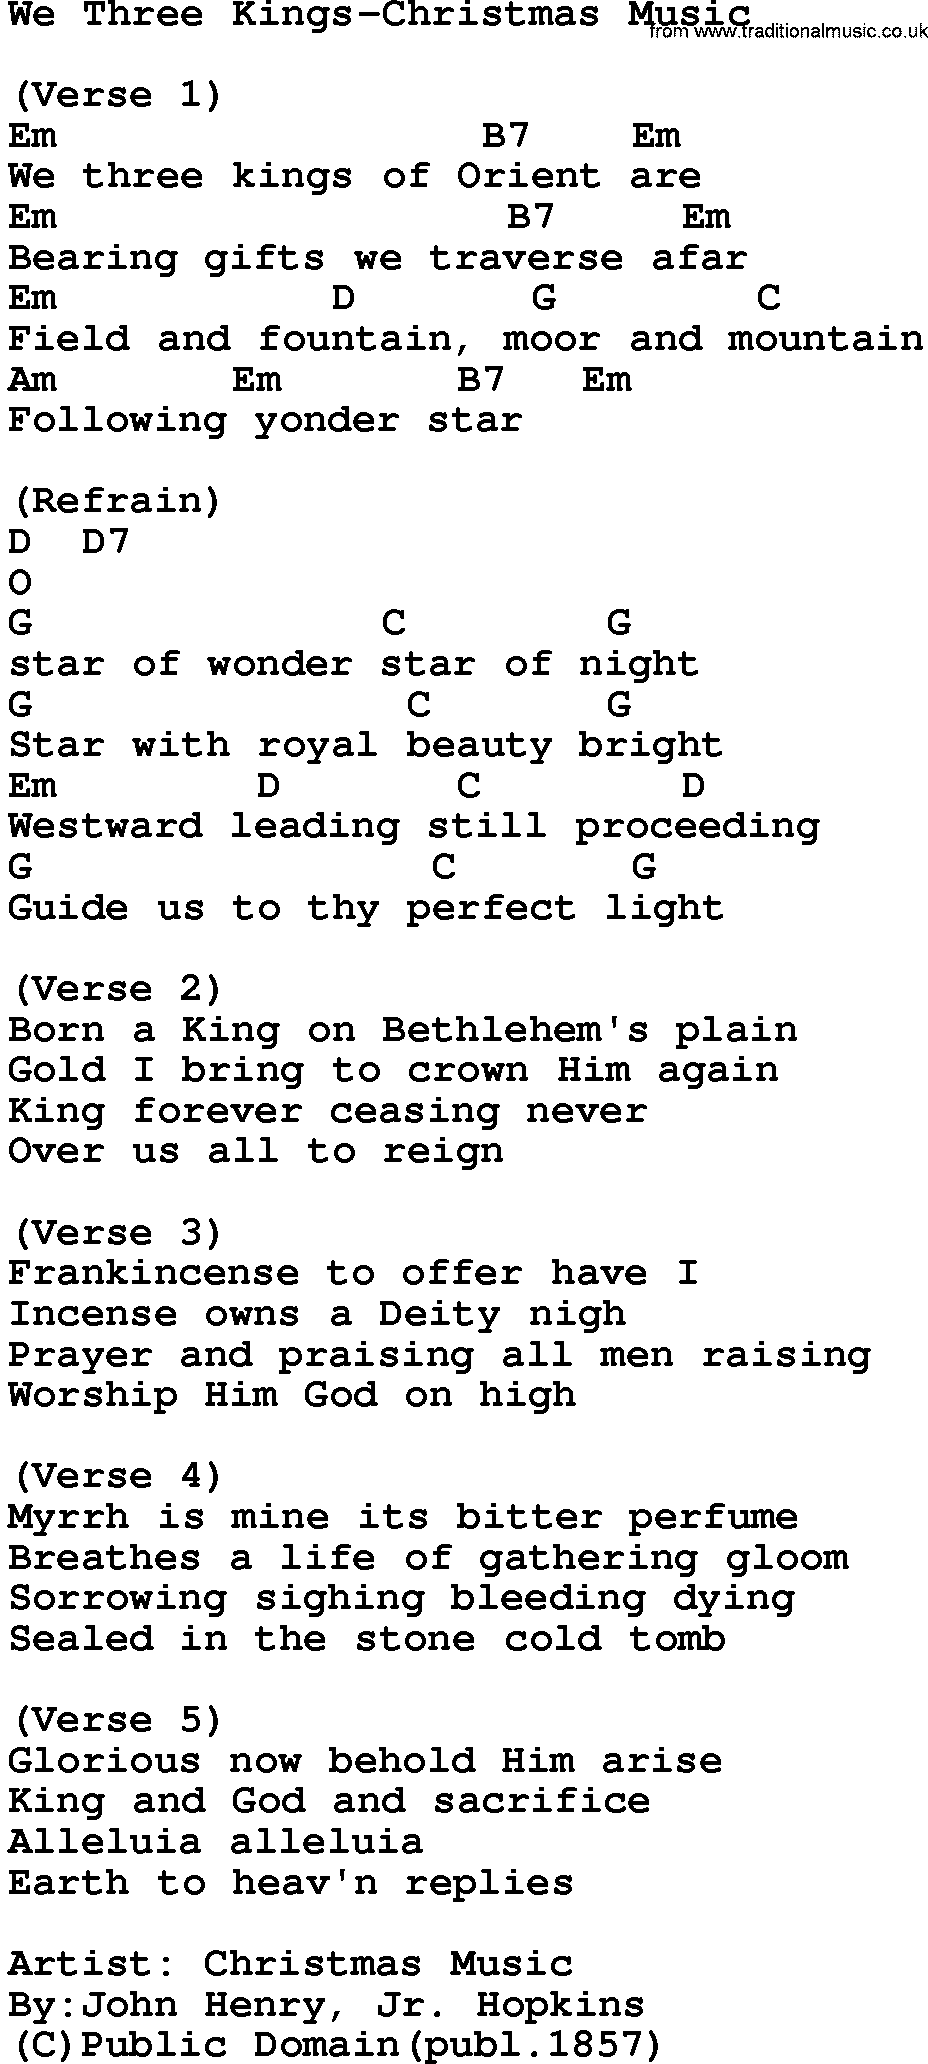 Music we three kings song download we three kings christmas gospel songs with chords start page titles list christian gospel song lyrics and chords hexwebz Images